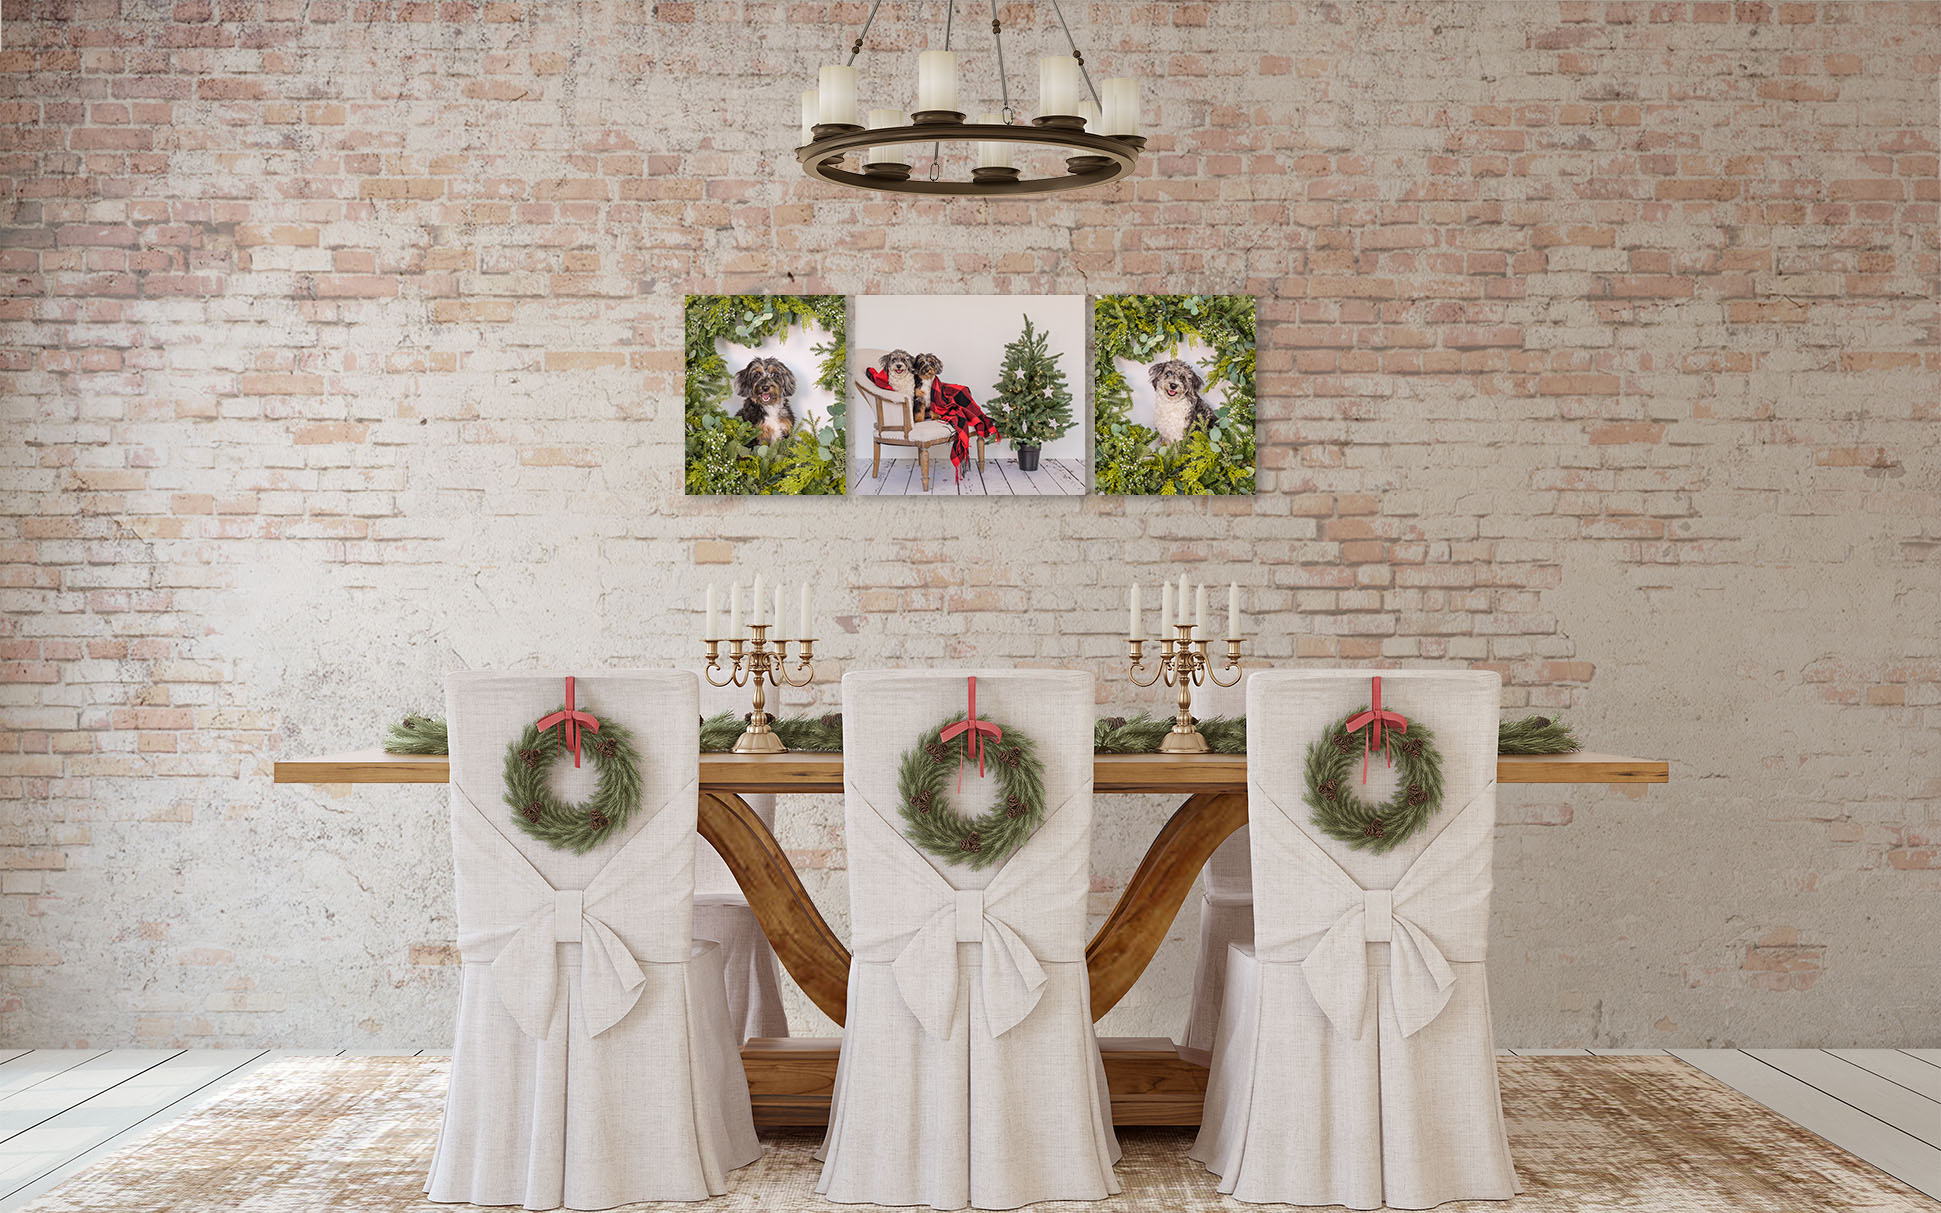 These holiday portraits will make any dinner more festive.